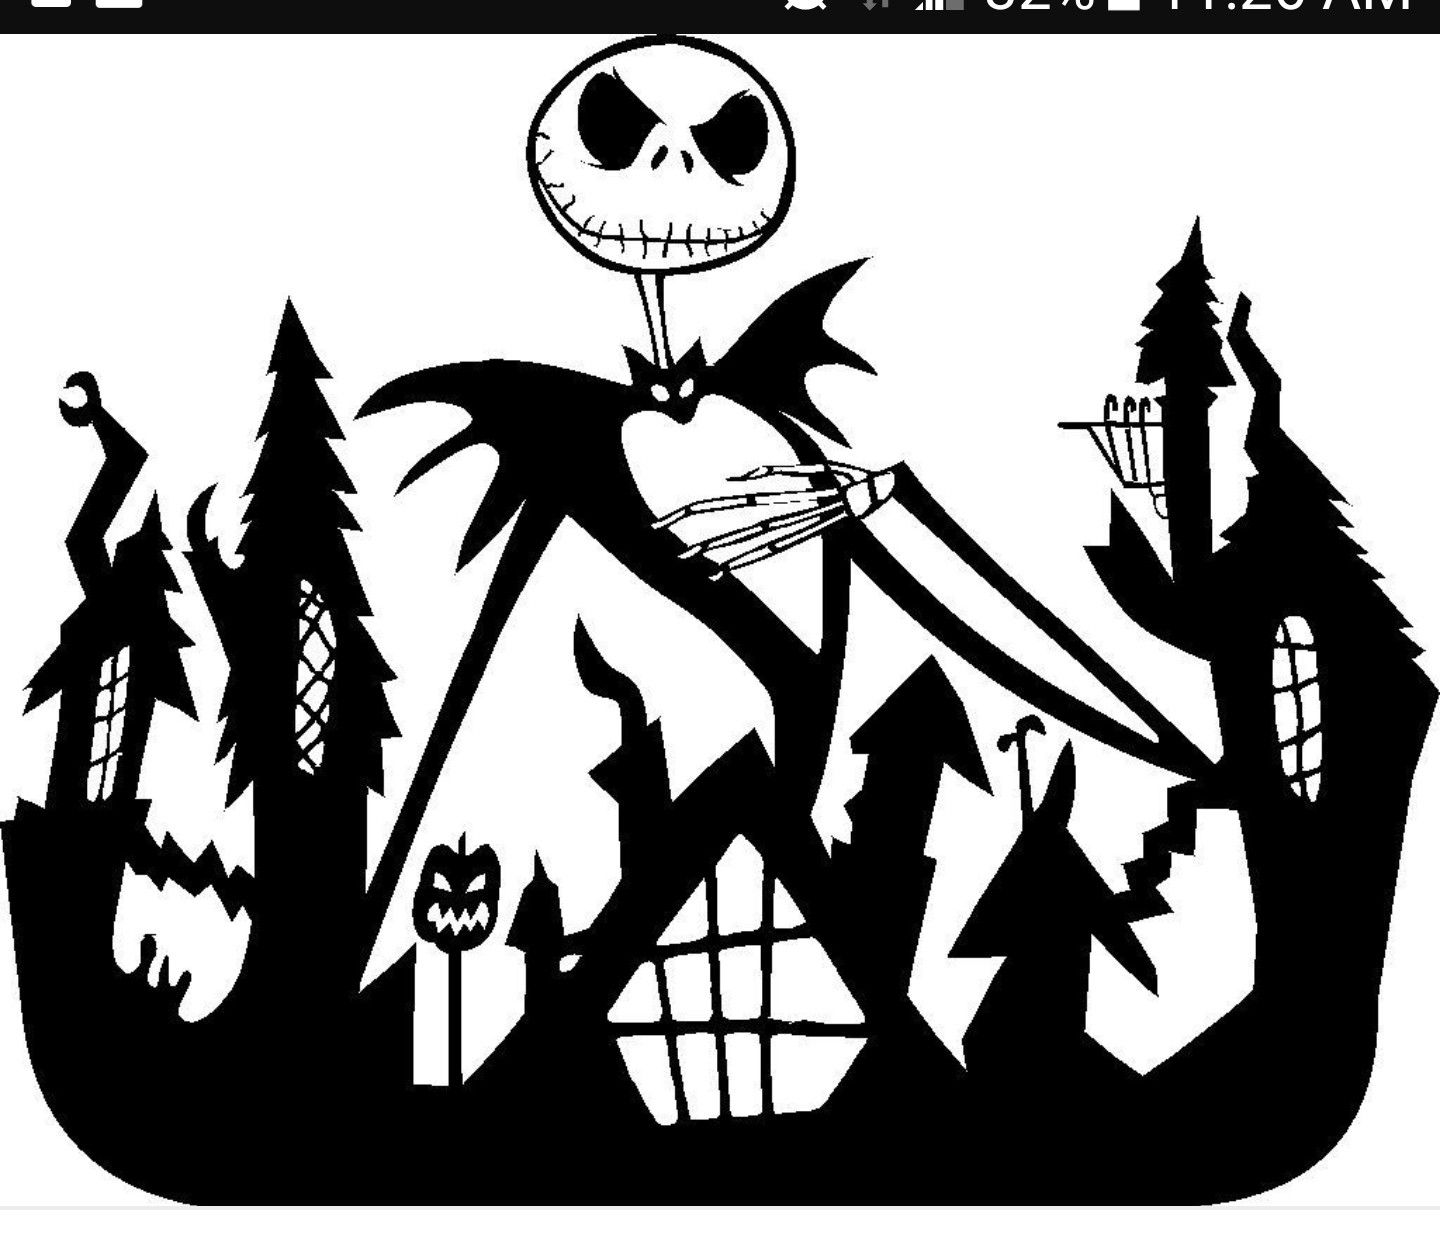 Pin By John Kale On Stencils Holidays Halloween Nightmare Before Christmas Drawings Nightmare Before Christmas Cricut Halloween